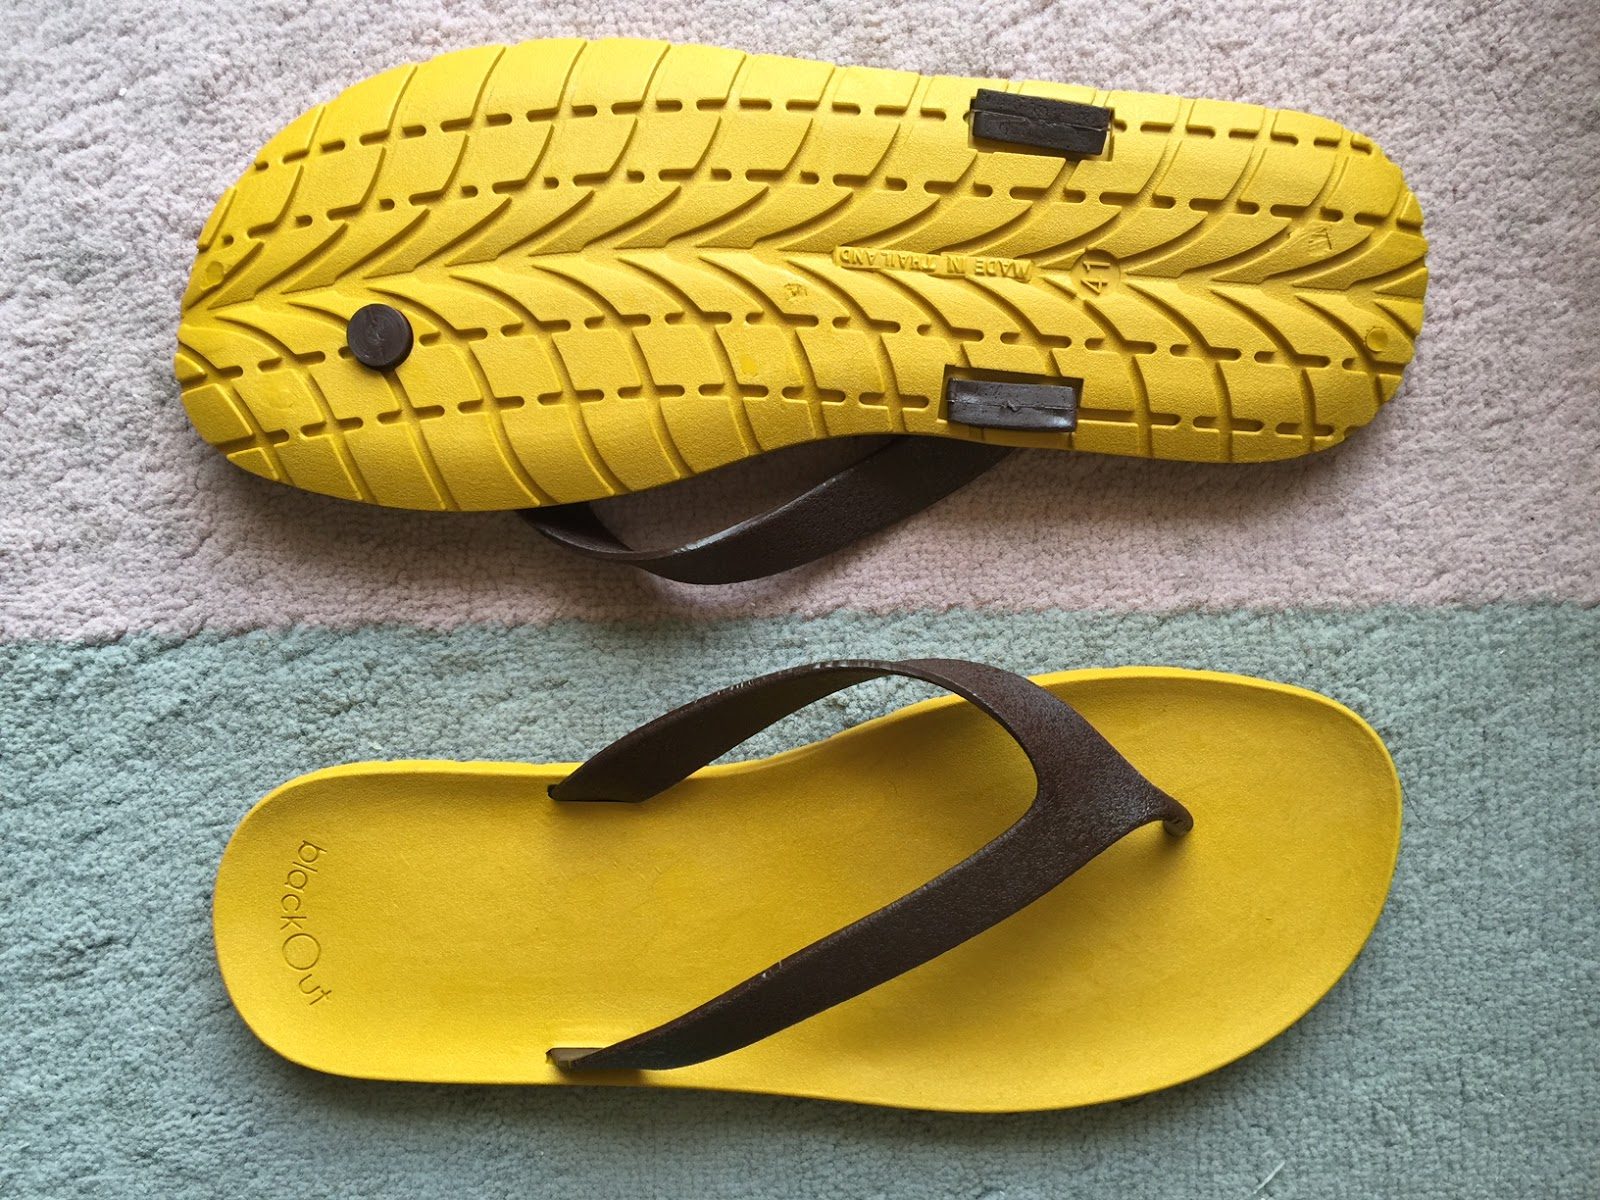 0ec2f5403025 BlackOut sandals are high quality and affordable sandals from Bangkok